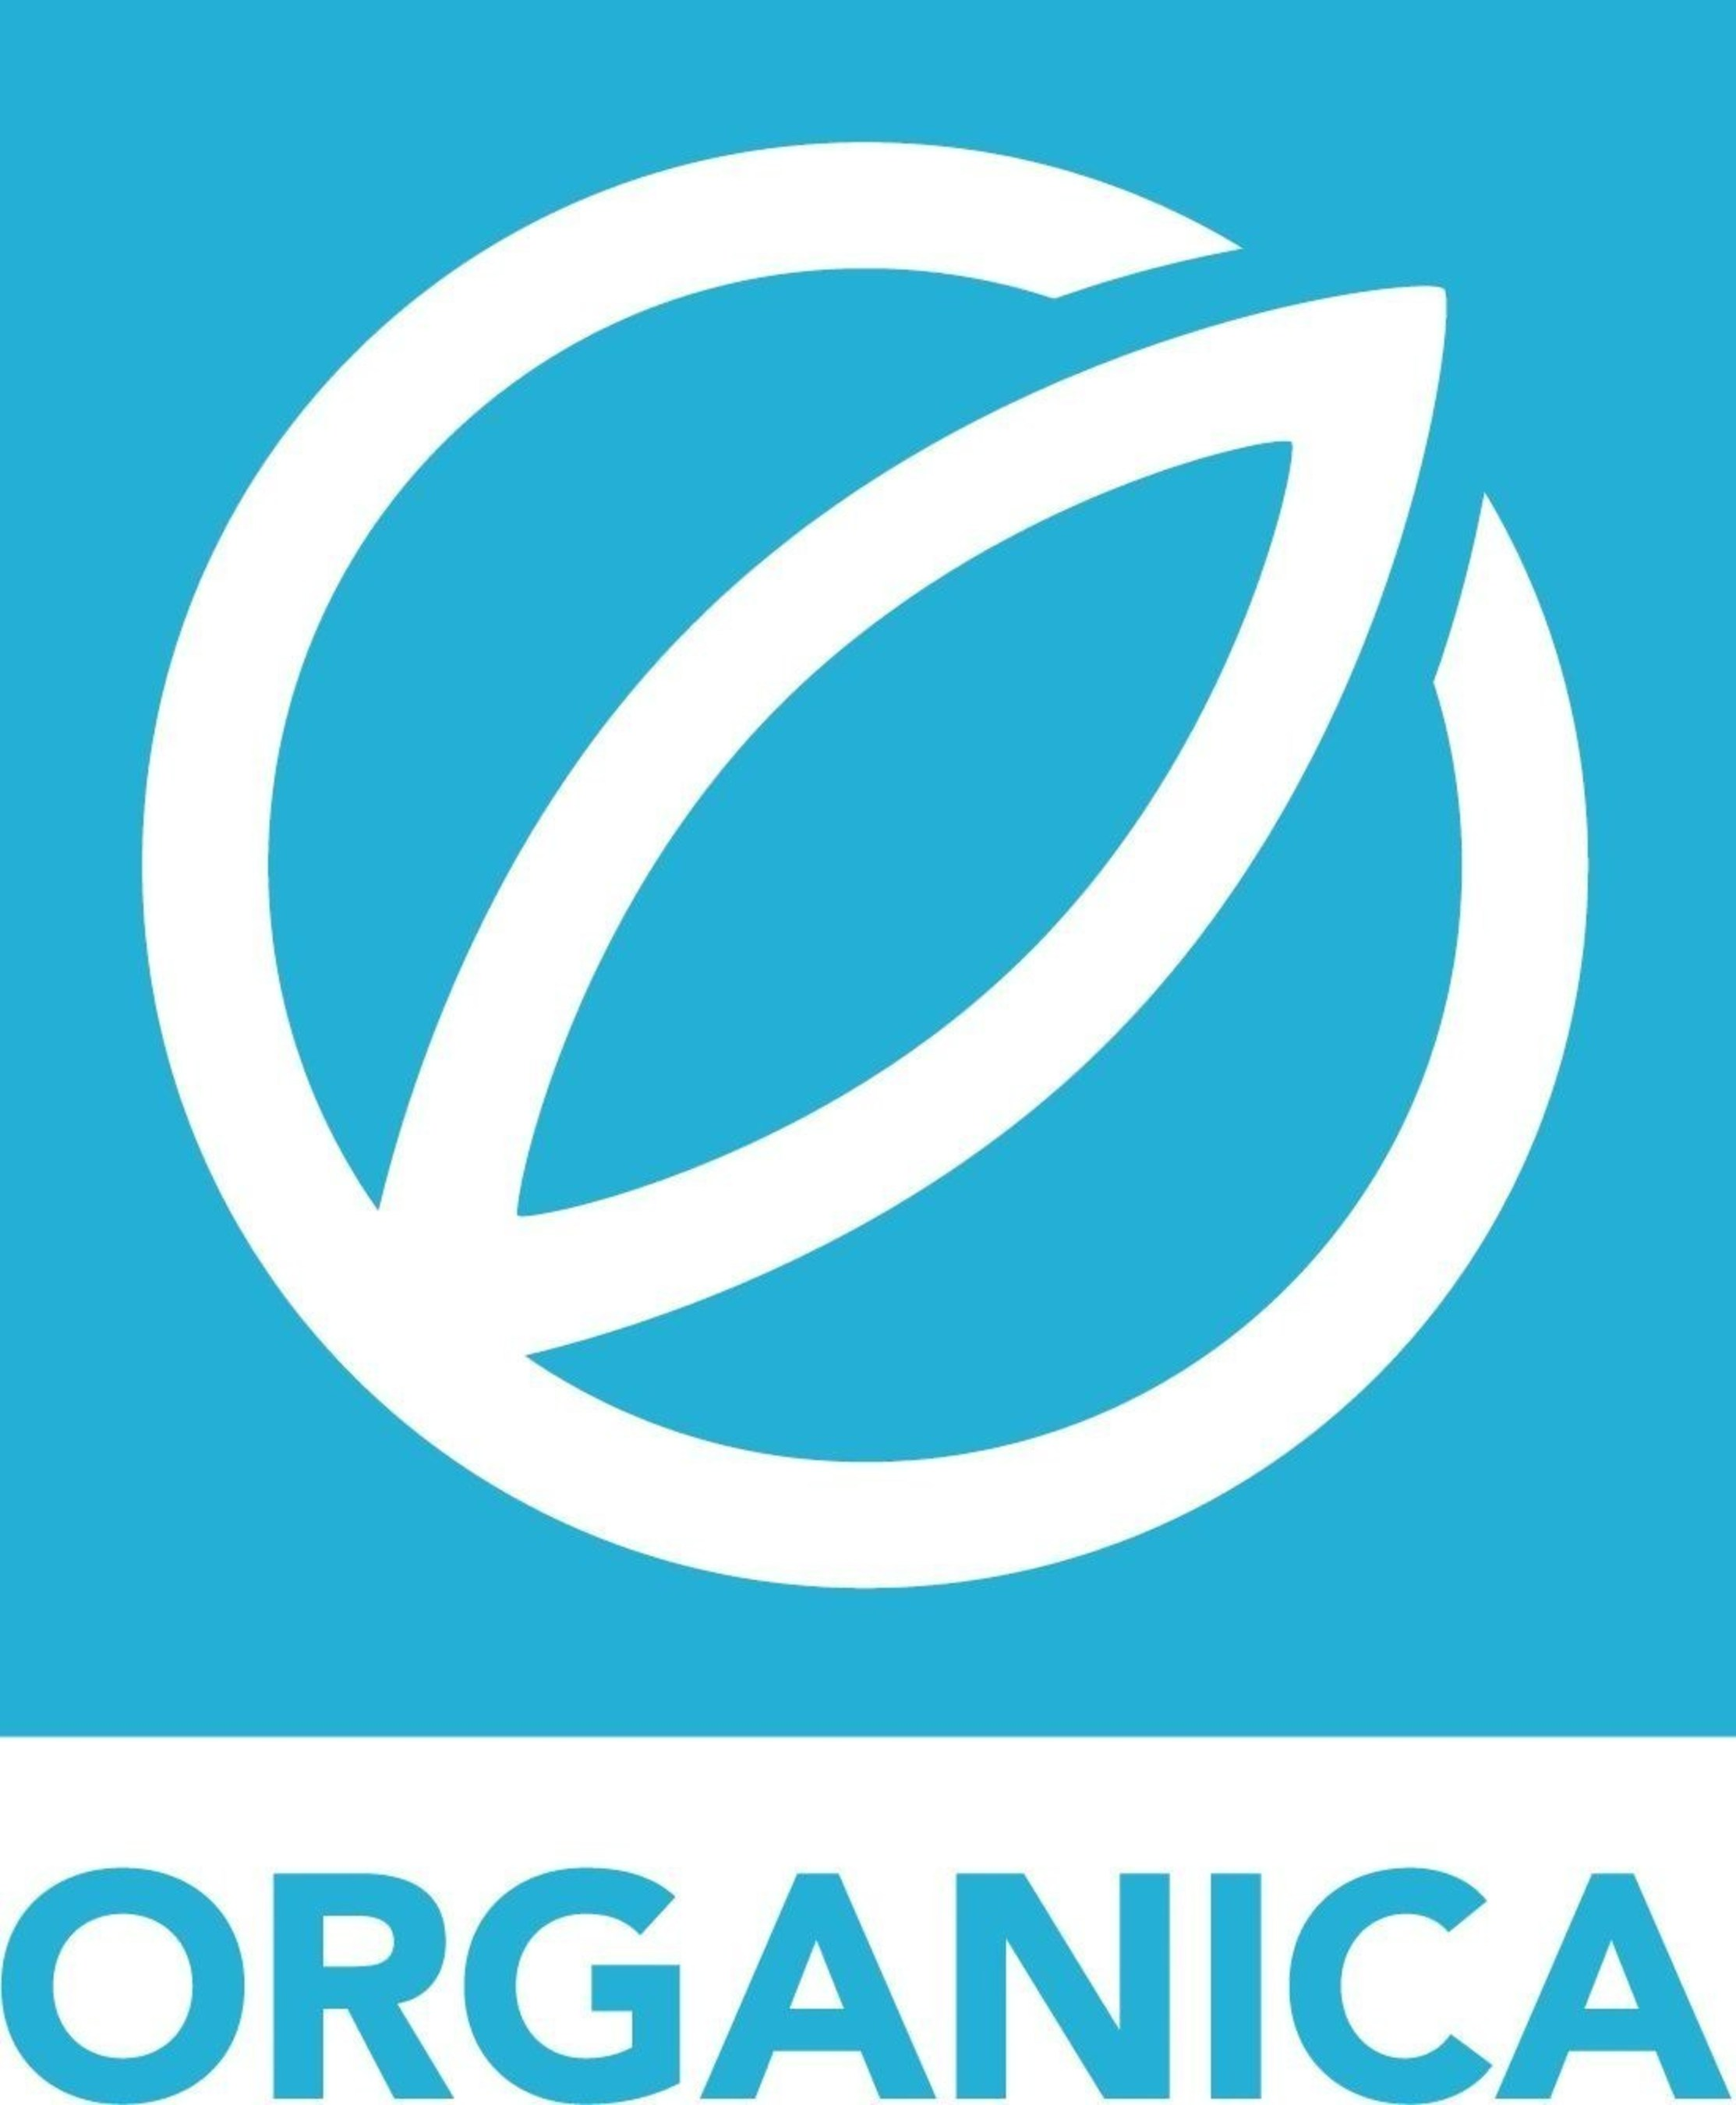 Organica Water Adds Free Activated Sludge Preliminary Engineering Documentation to its Hosted Design Platform